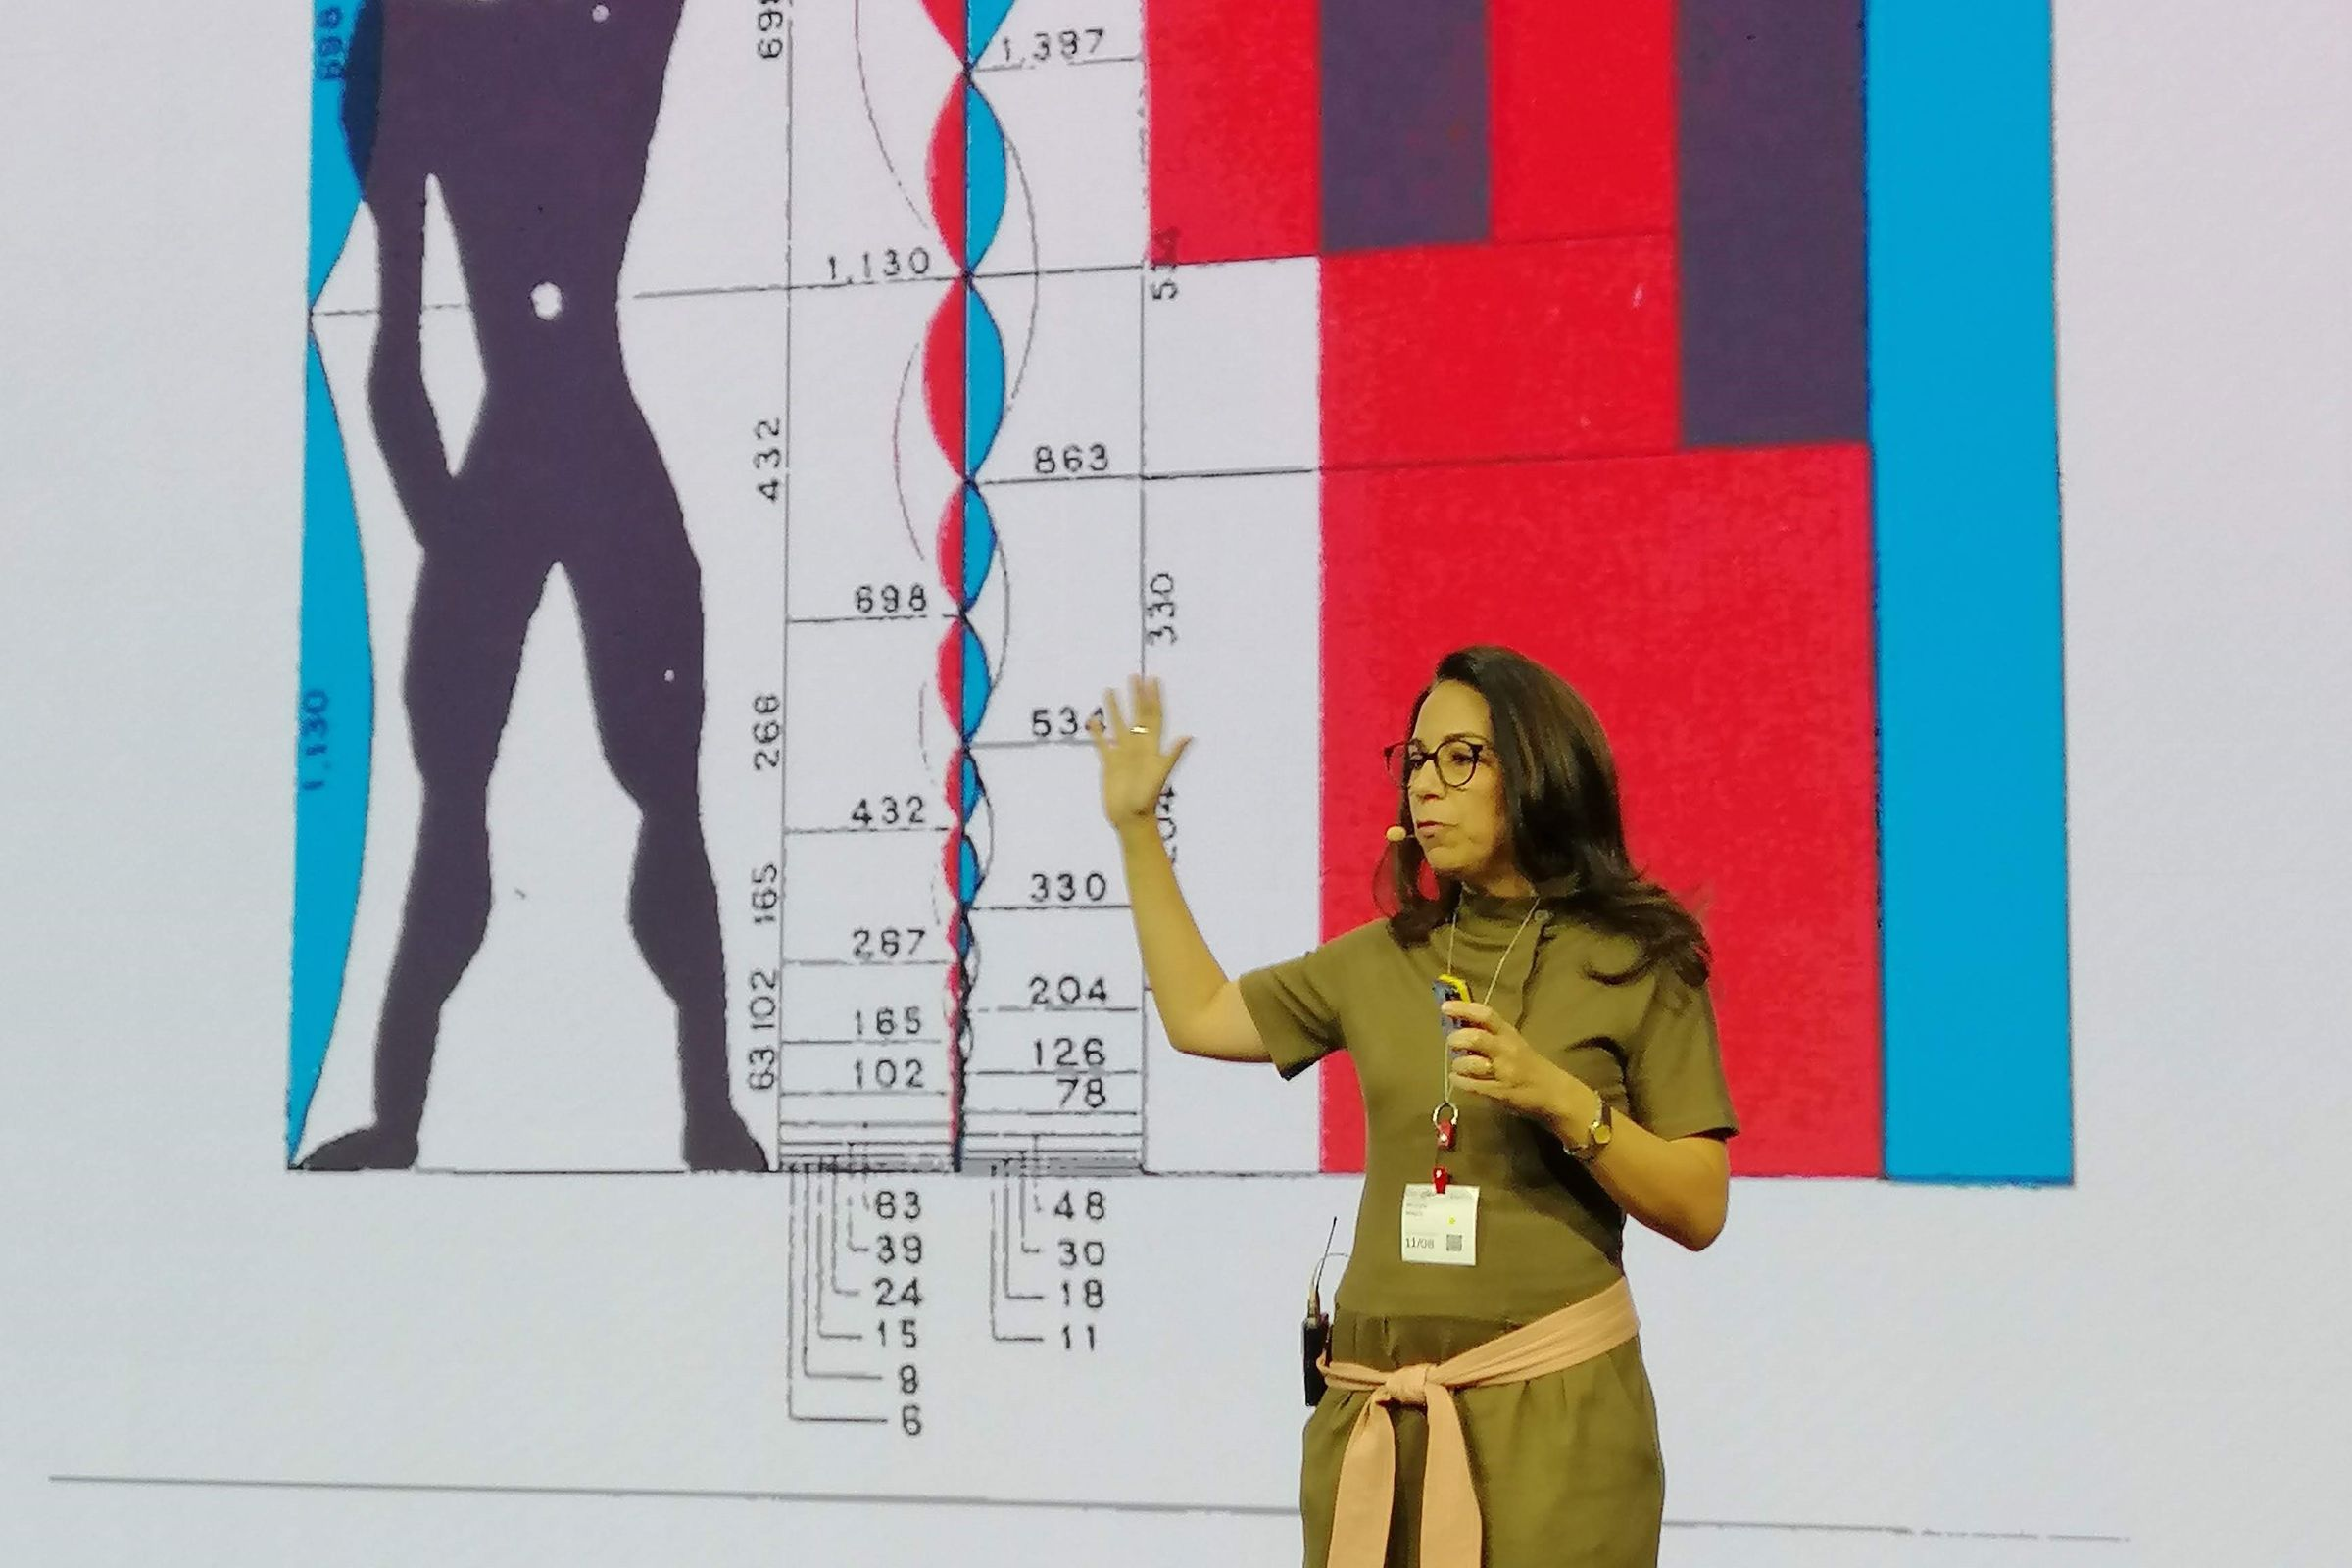 A woman in a yellow top stands on a lit stage in front of a large presentation screen with a red TEDxCairo sign